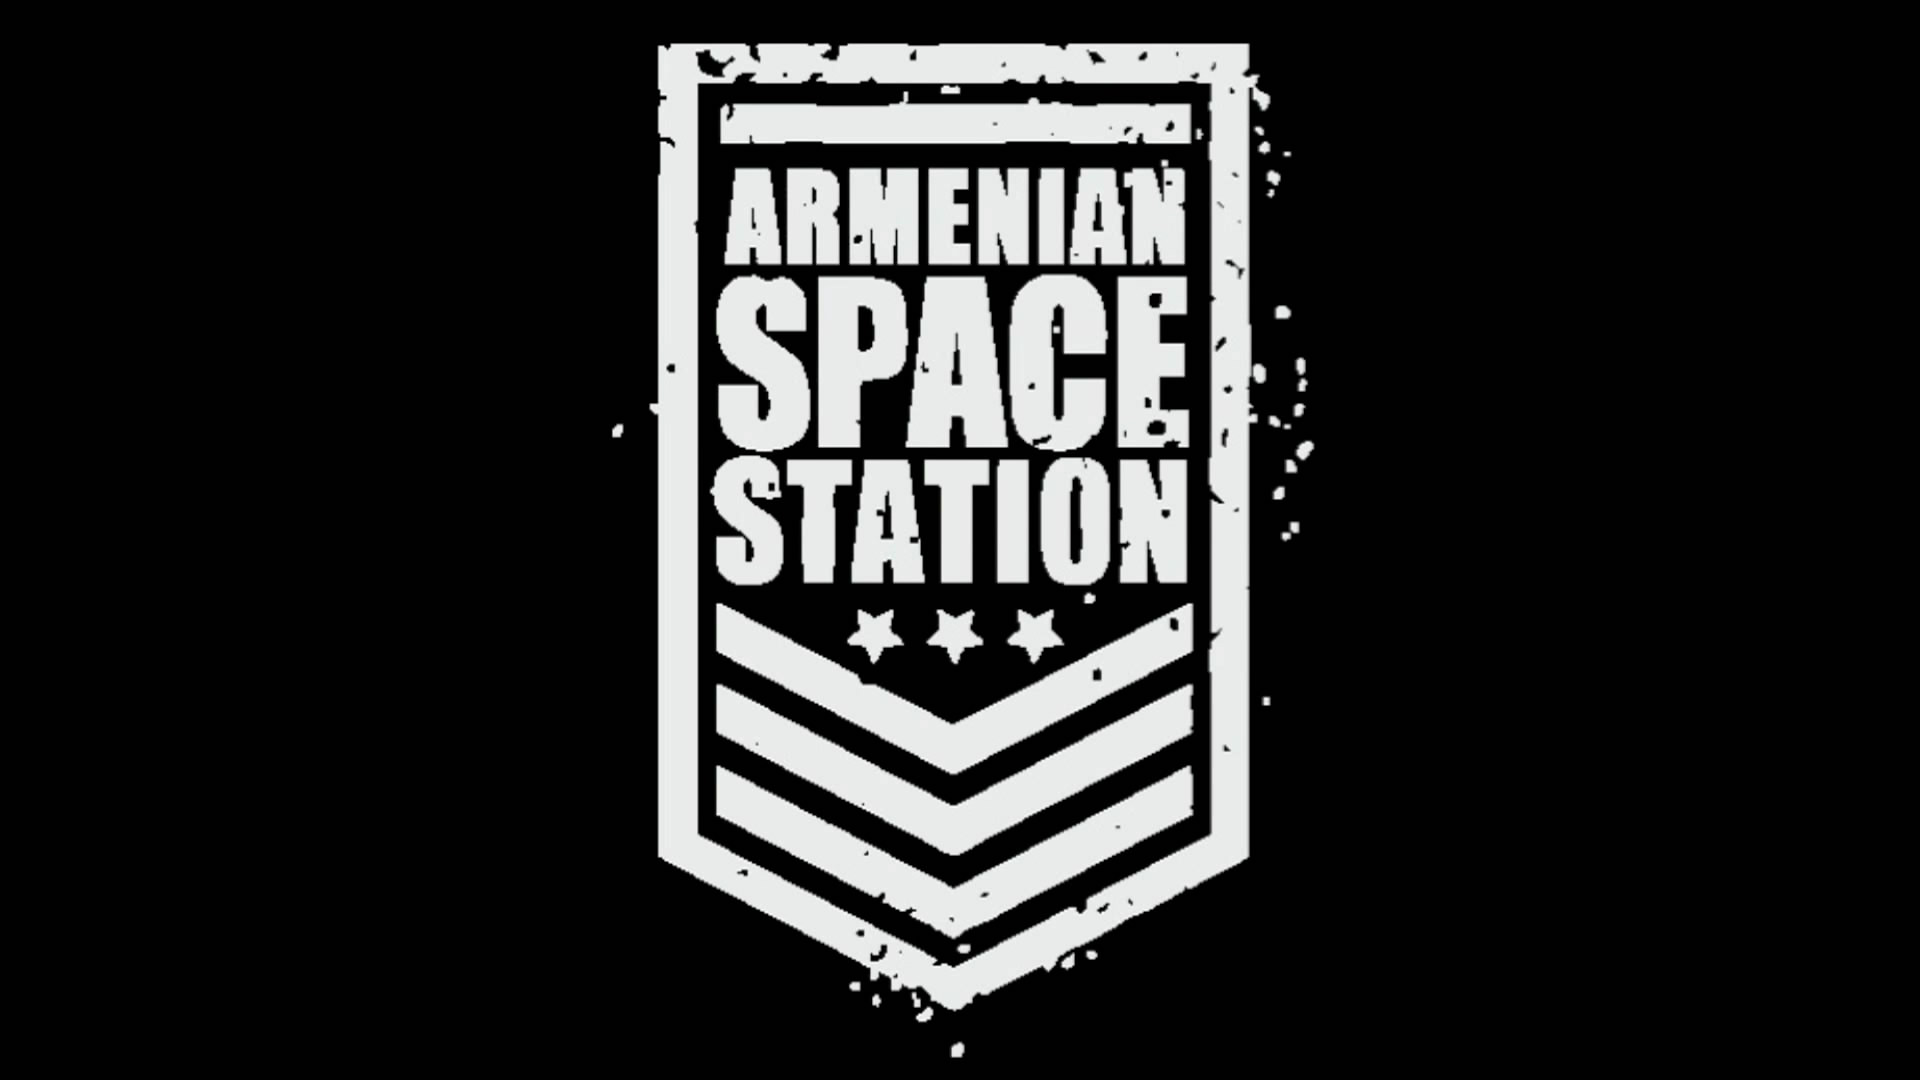 Metal Area - Extreme Music Portal > Armenian Space Station